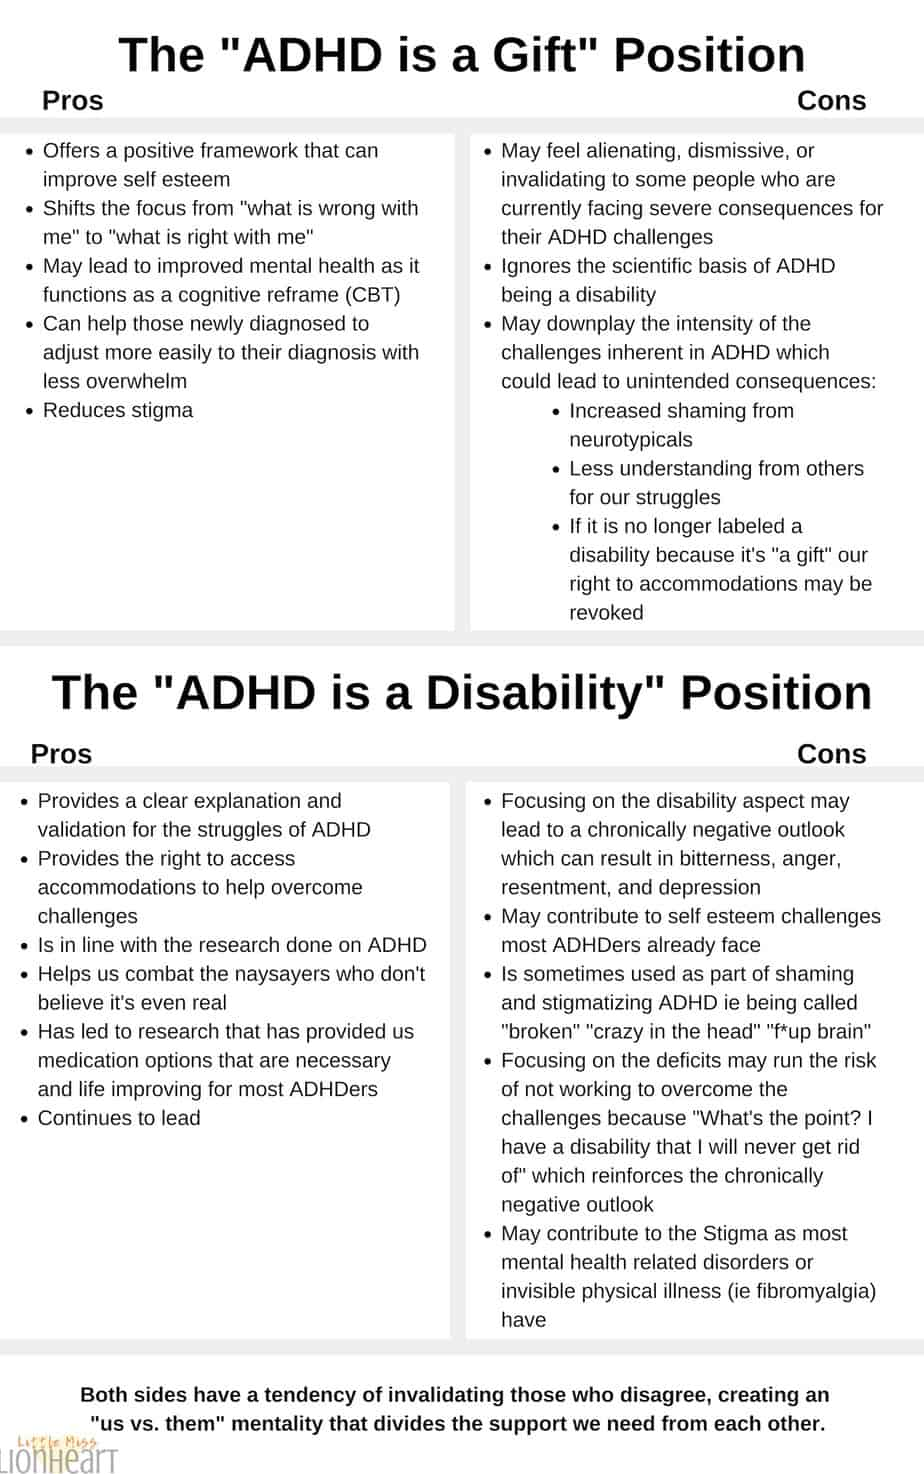 ADHD disorder, disability, gift